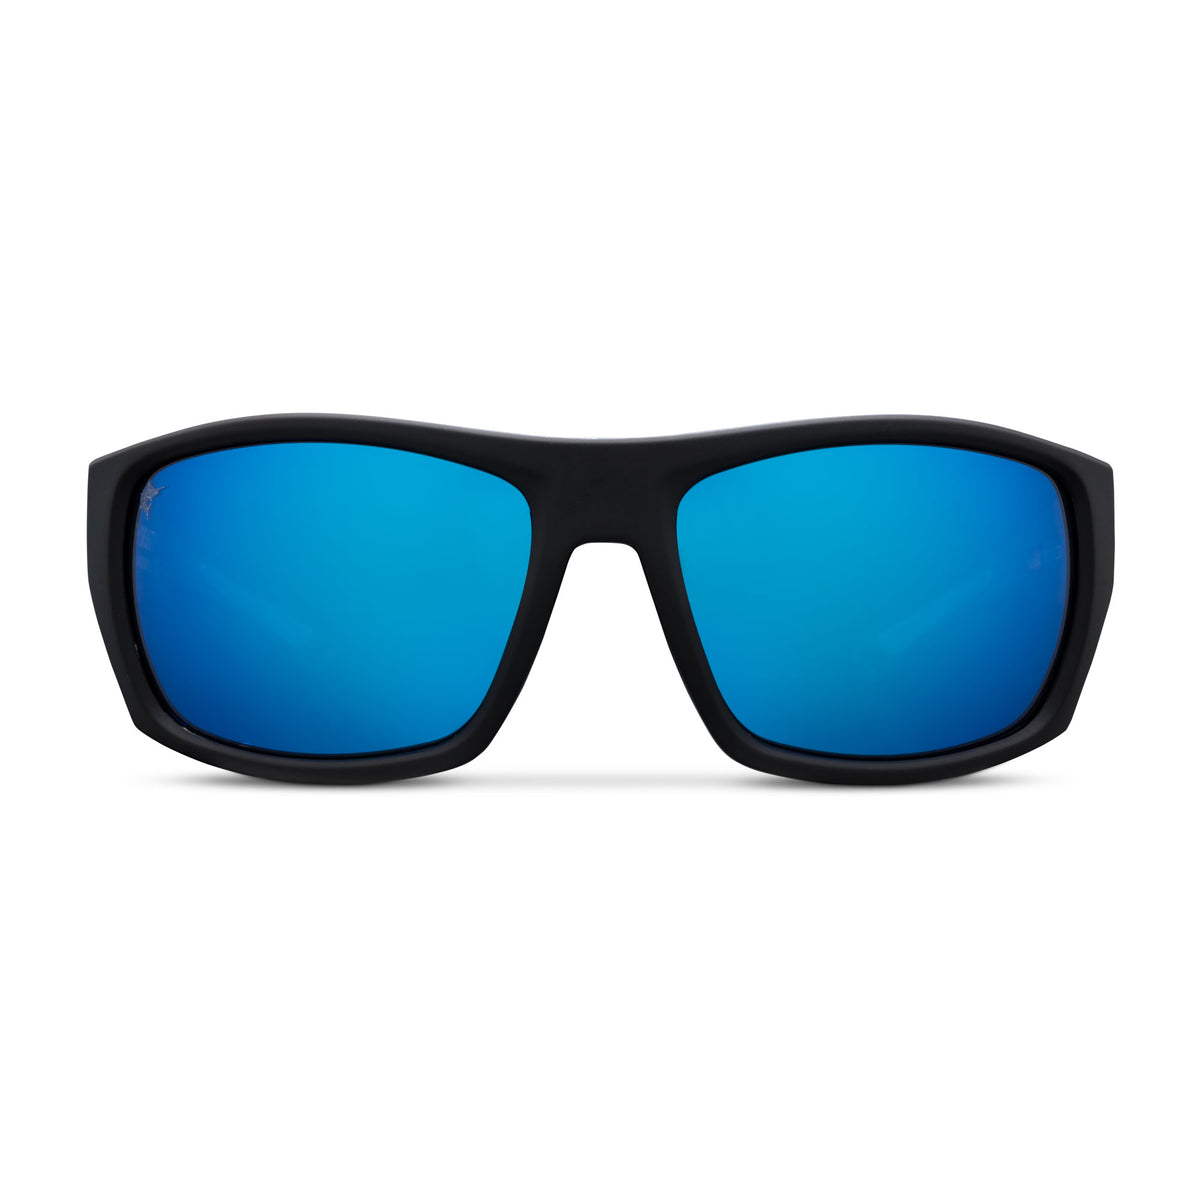 Pursuit - Polarized Mineral Glass™ Big Image - 2